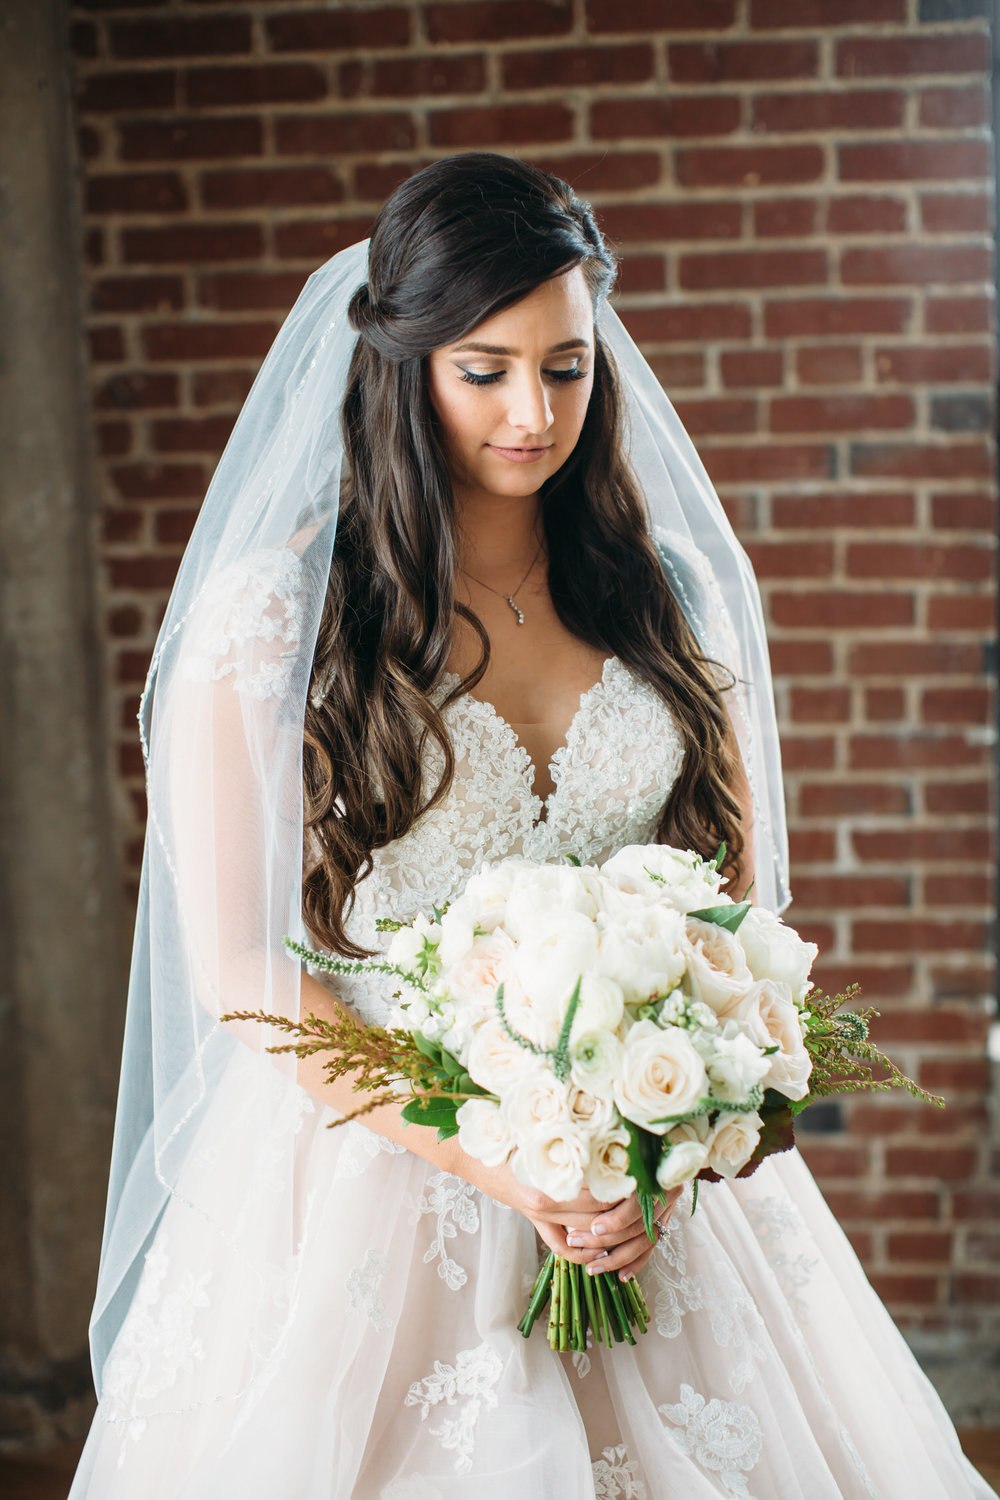 Bridal portrait of the bride with her wedding bouquet. St Louis wedding photographer